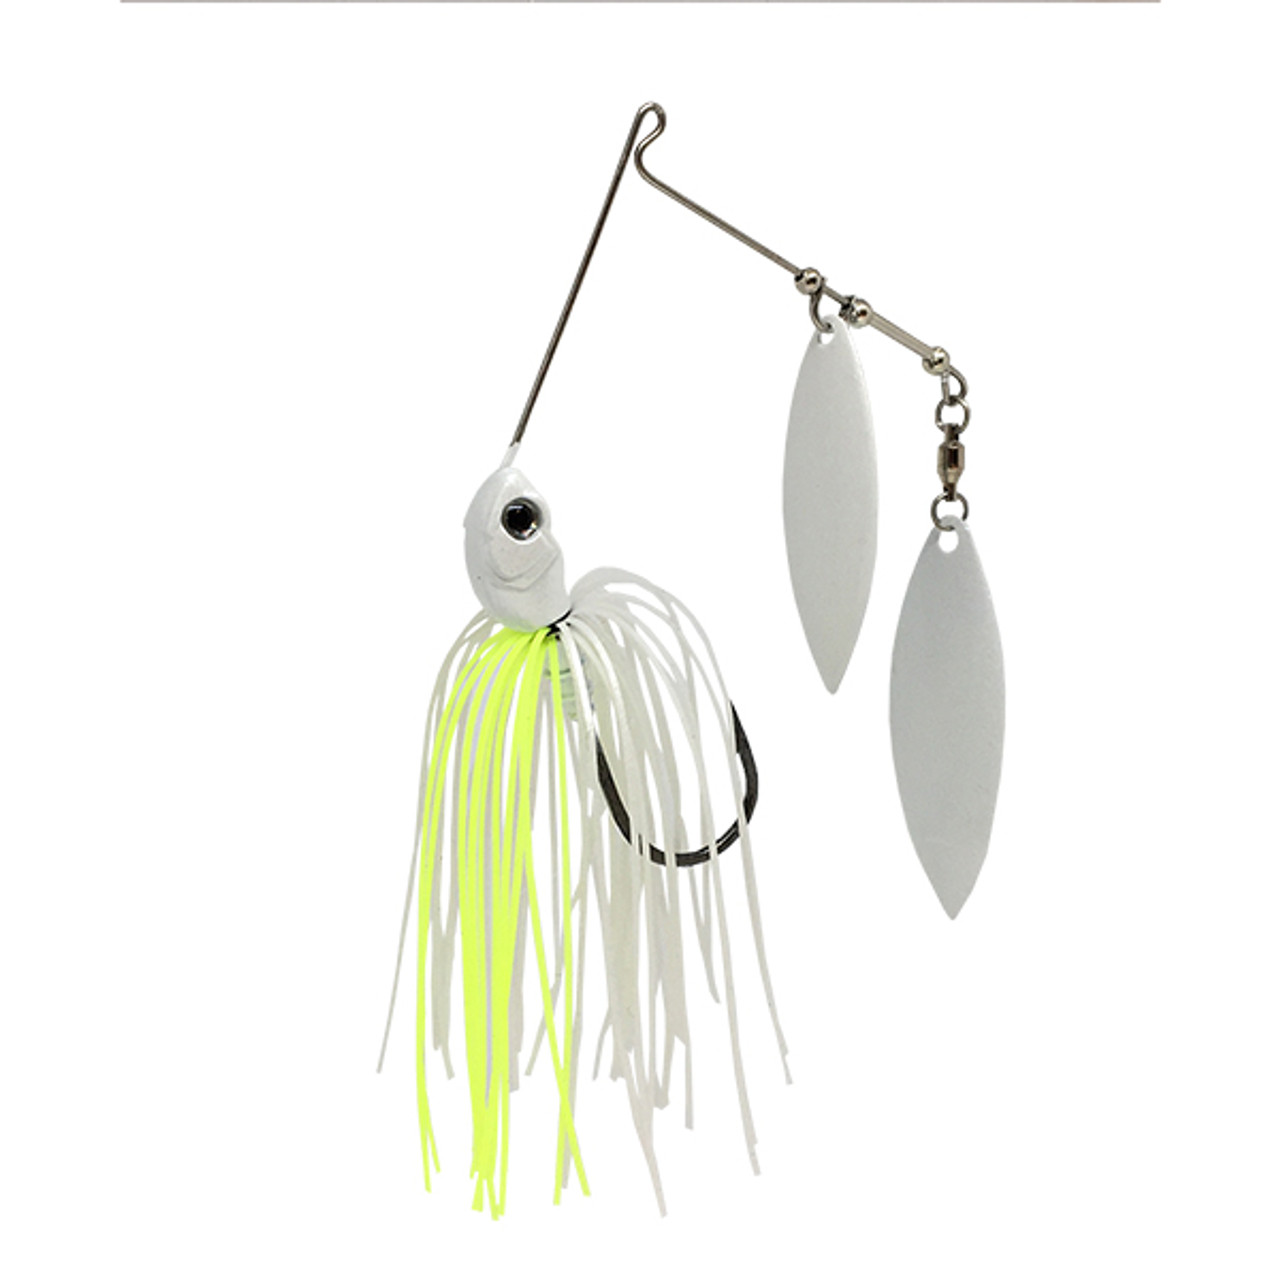 SteelShad Spinnerbait - Double Willow Blade - White & Yellow